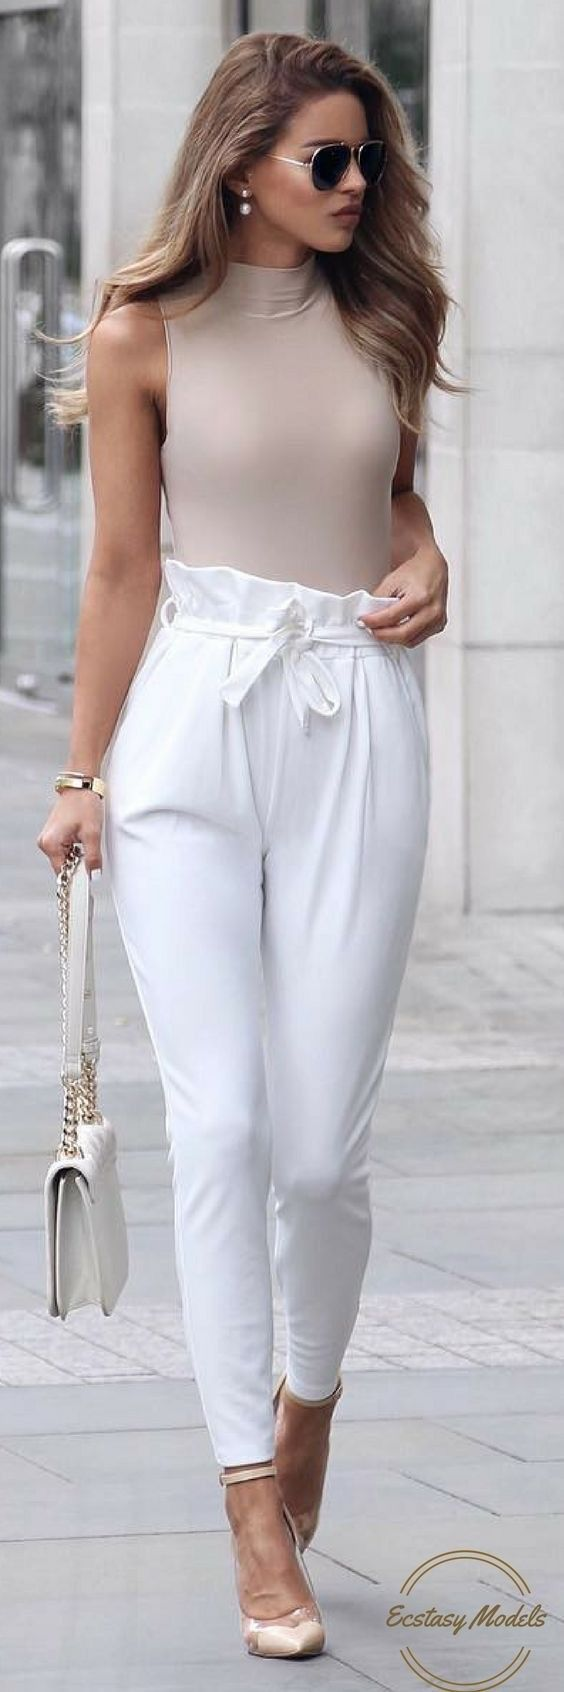 Best 20+ High Waisted Palazzo Pants Ideas On Pinterest | High Waist Dresses Trousers Women And ...